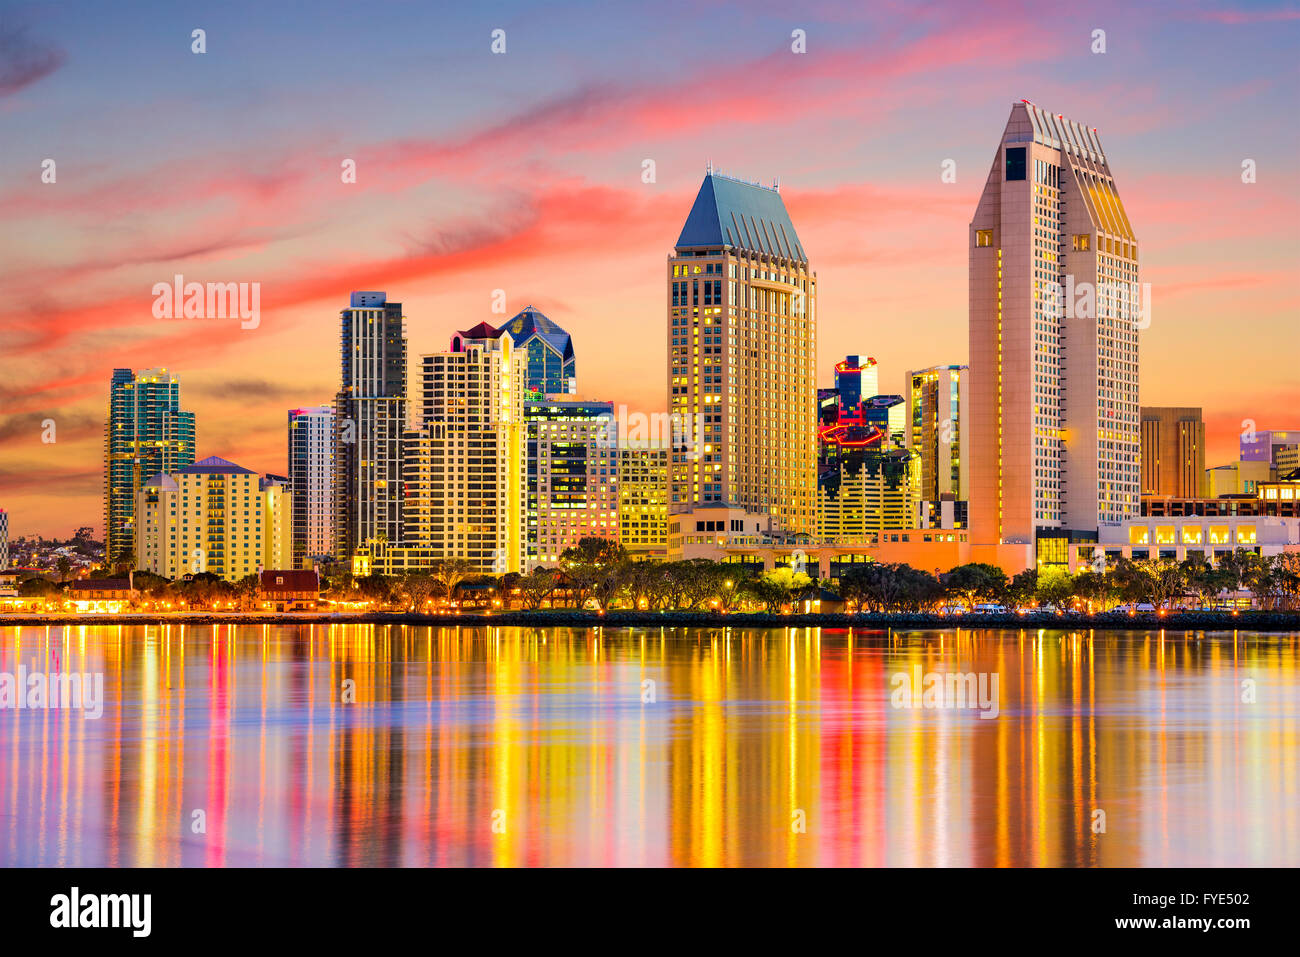 San Diego Night Skyline High Resolution Stock Photography And Images Alamy